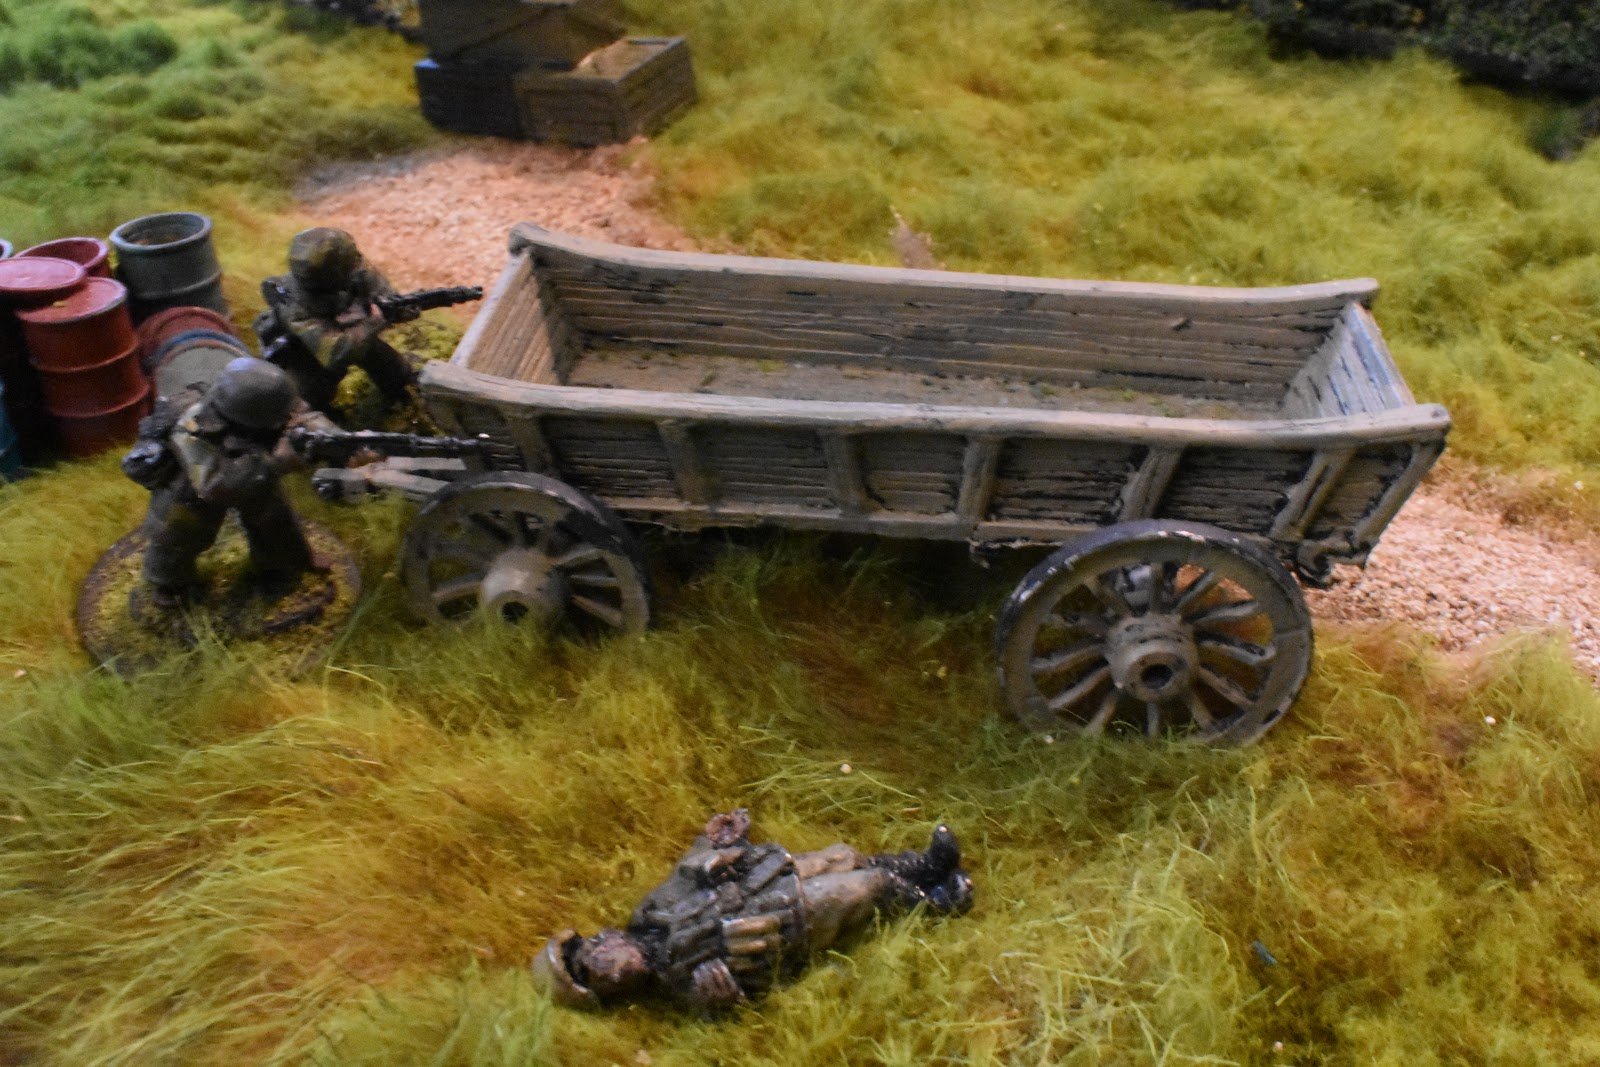 Miniature Wargaming with Spudnick: Solo Game Testing Some Rules for WWII